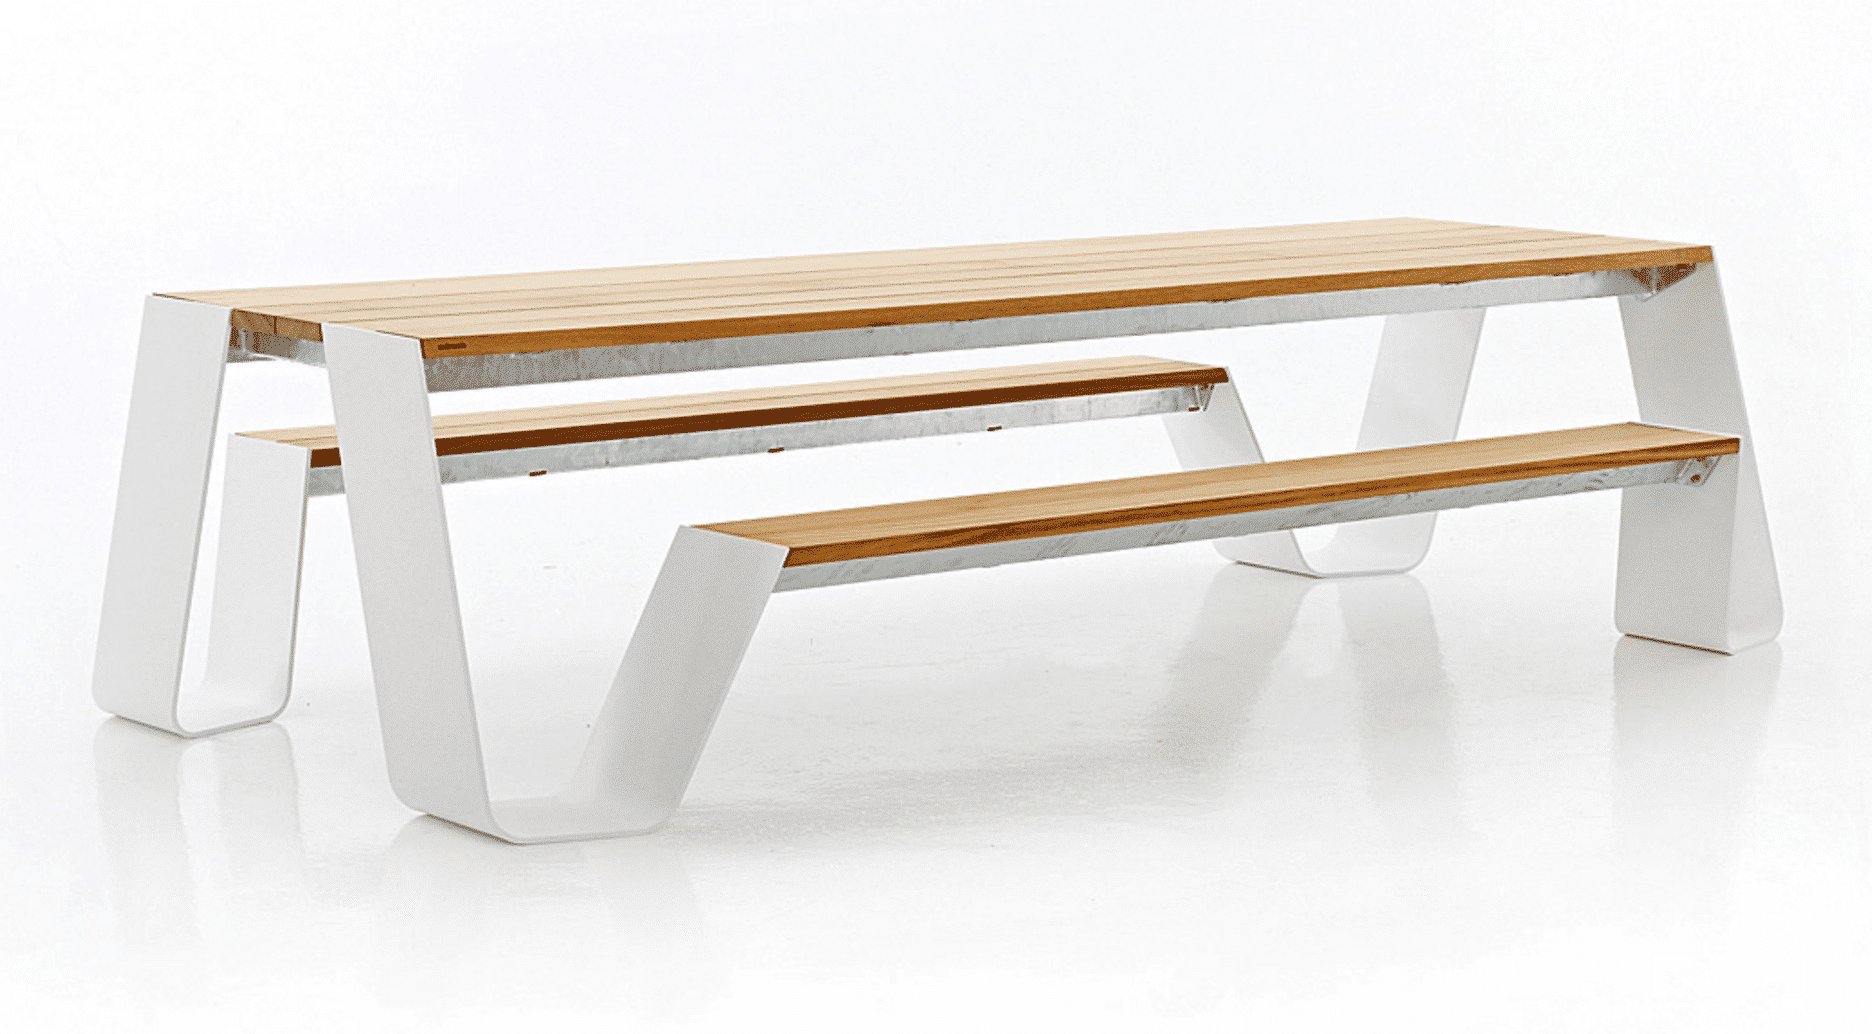 Spaceist Hoop picnic bench table